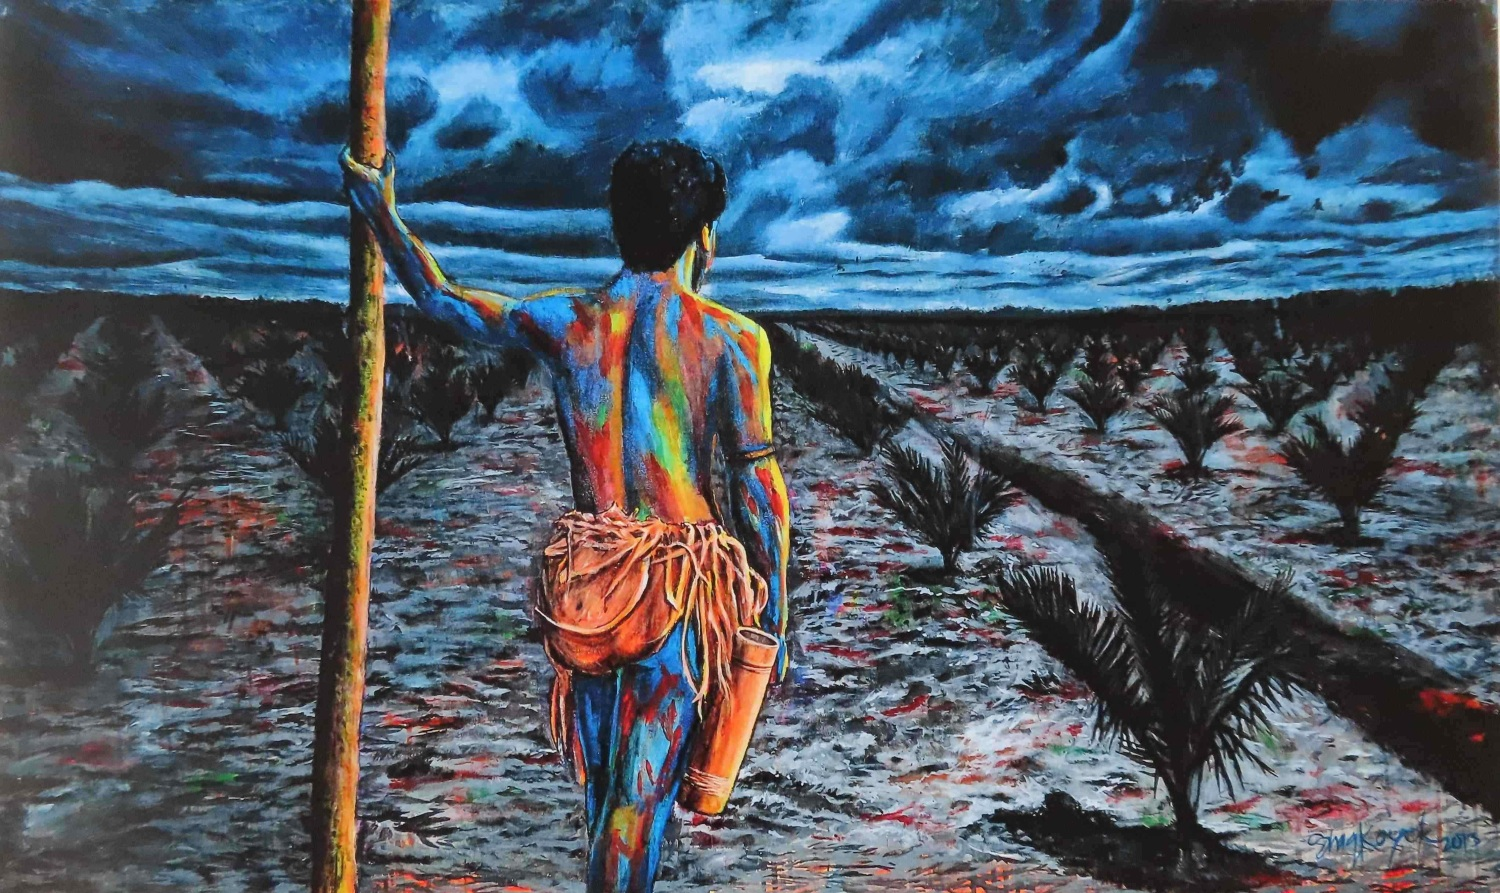 The Great Value of Malaysian Indigenous Artists' Artwork